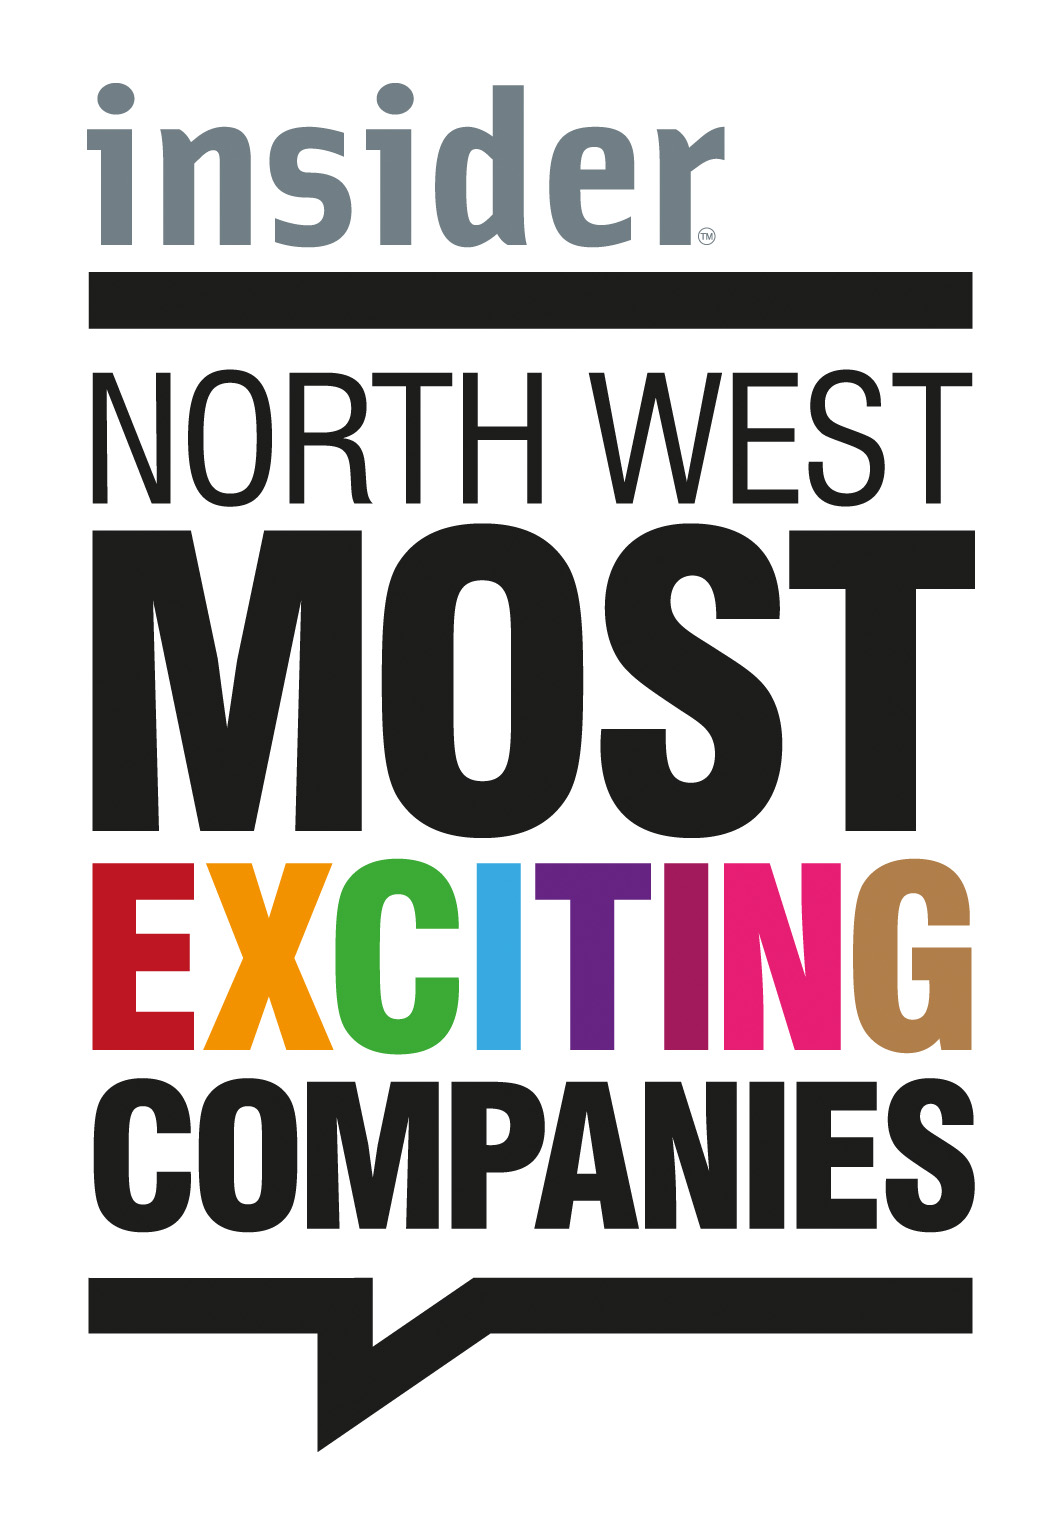 "<ImageCaption xmlns=""http://parkcloud.net/internal"">ParkCloud named one of the North West's Most Exciting Companies!</ImageCaption>"